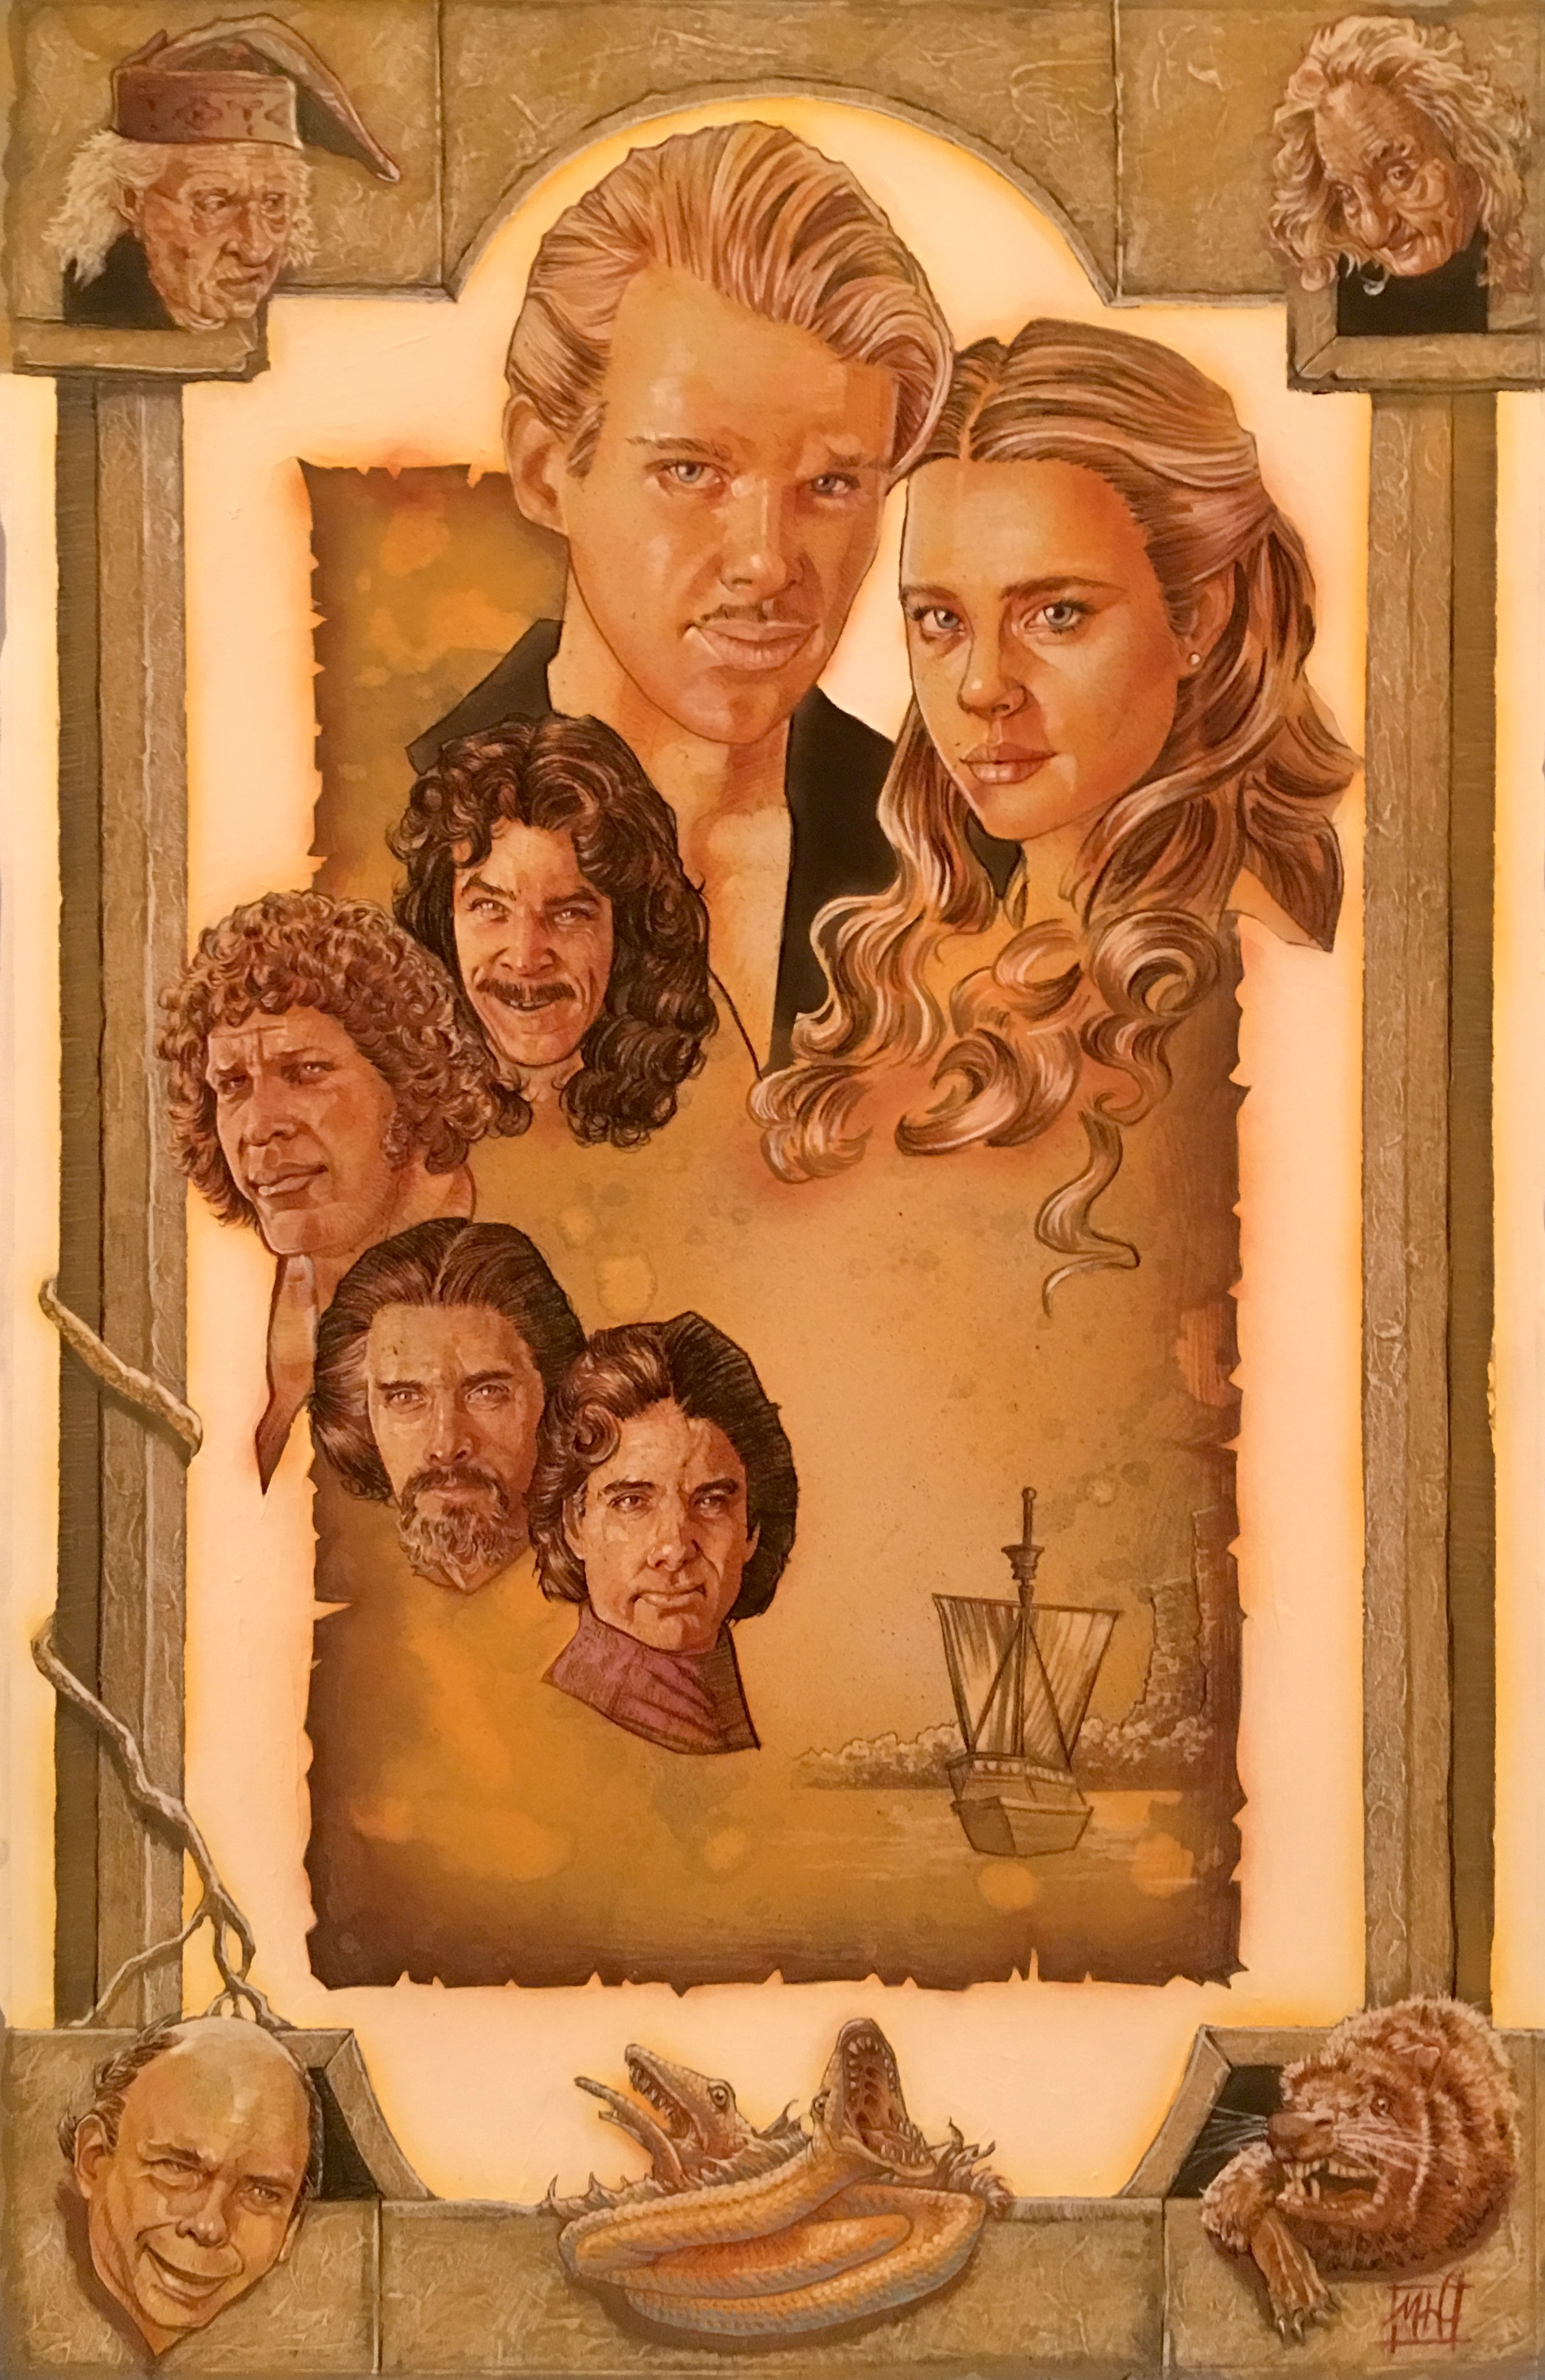 Princess Bride-Fan-Art-07212017